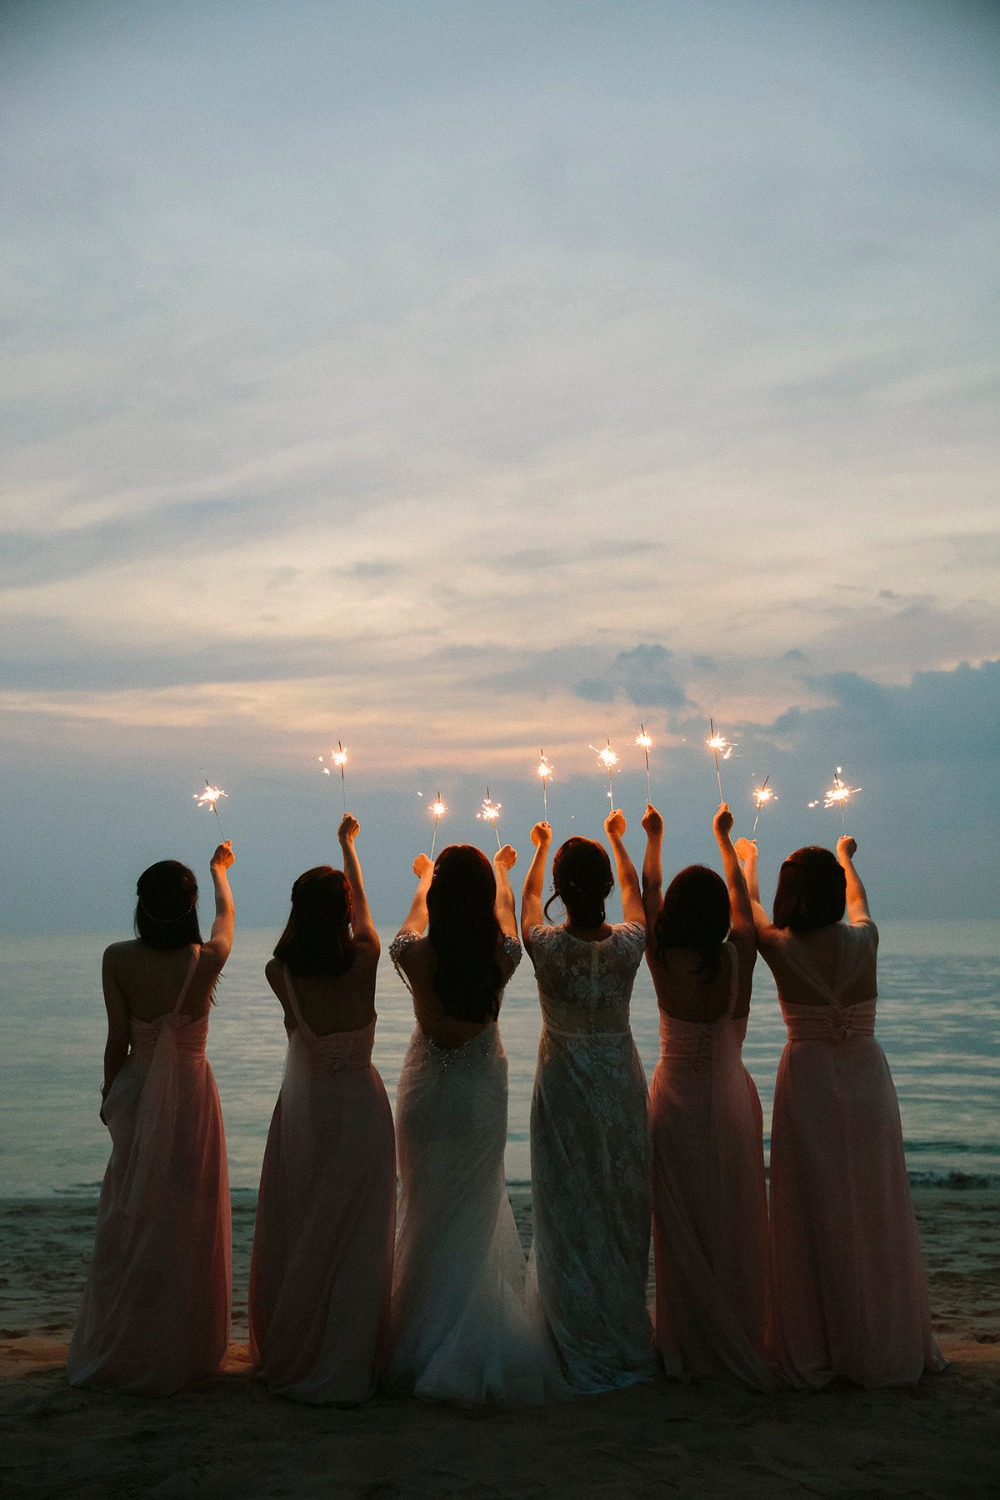 Sparklers and bridesmaids